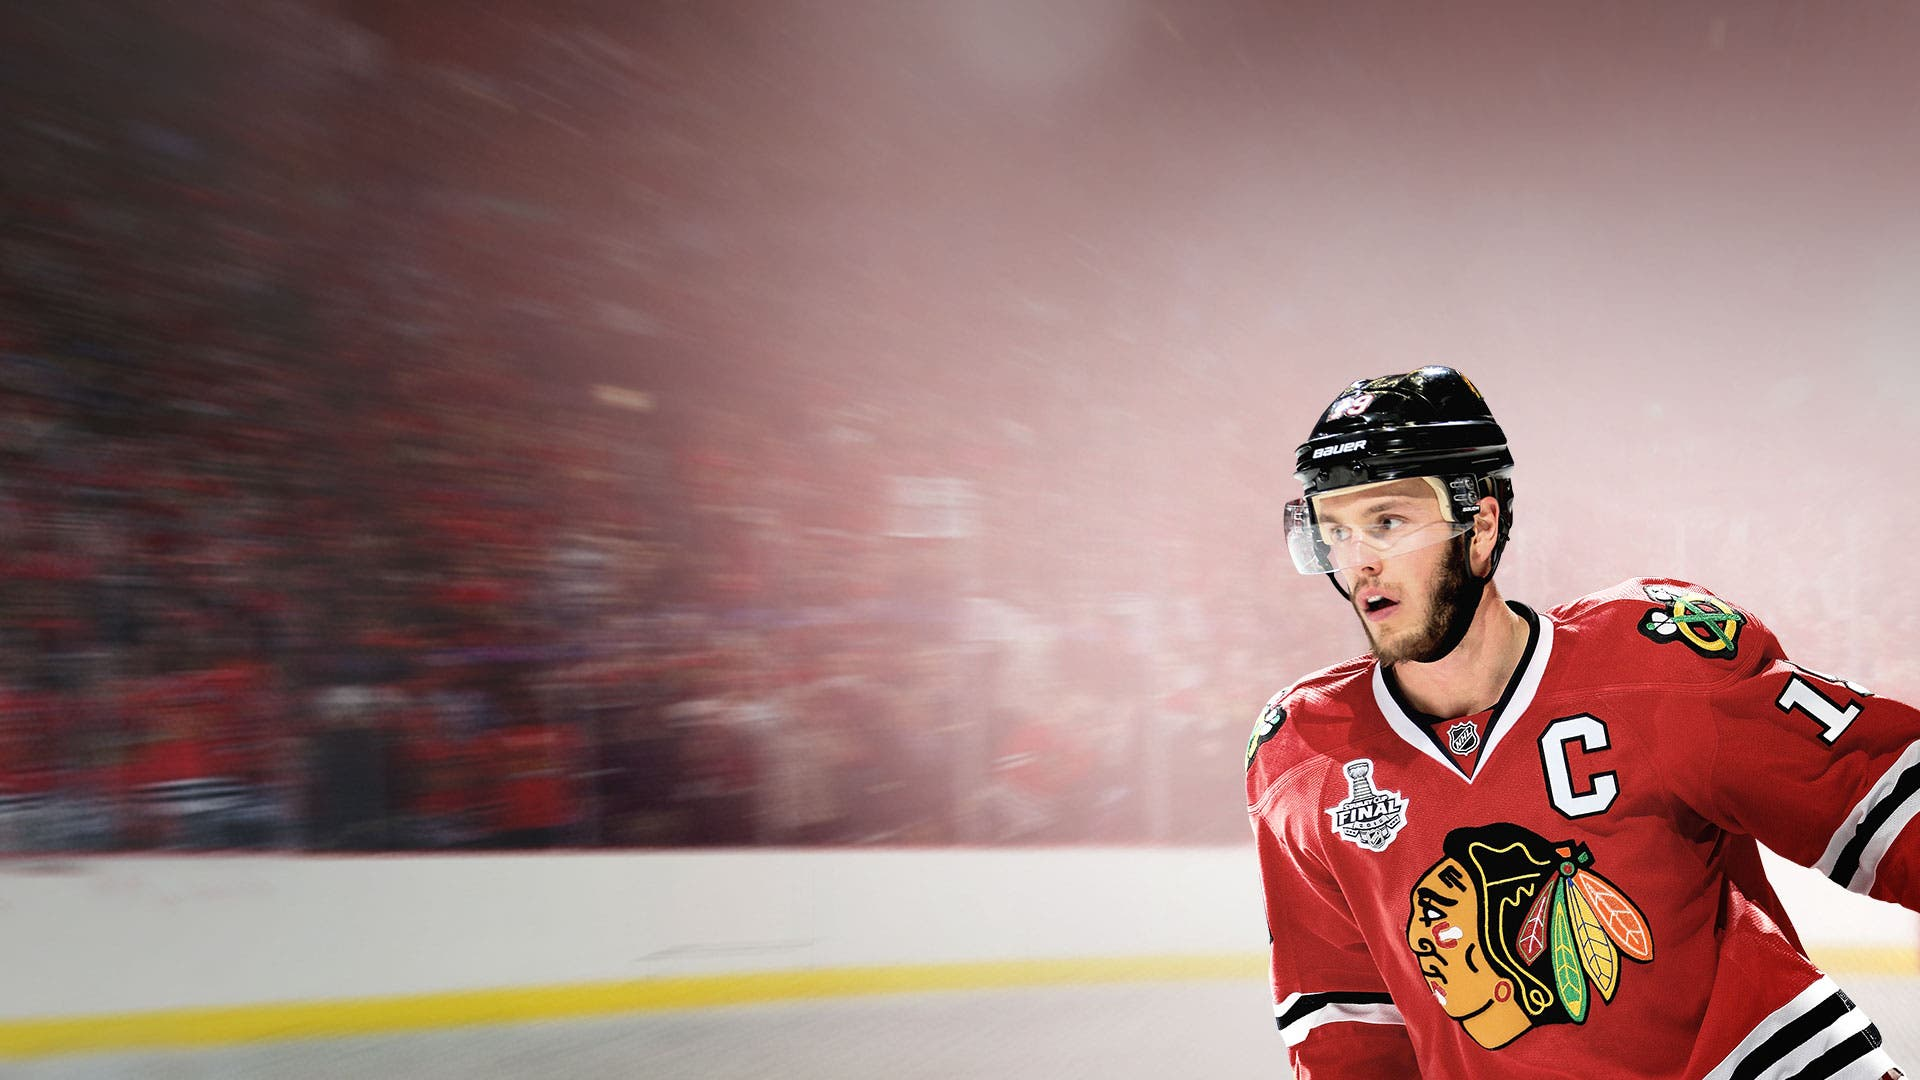 NHL16 featured